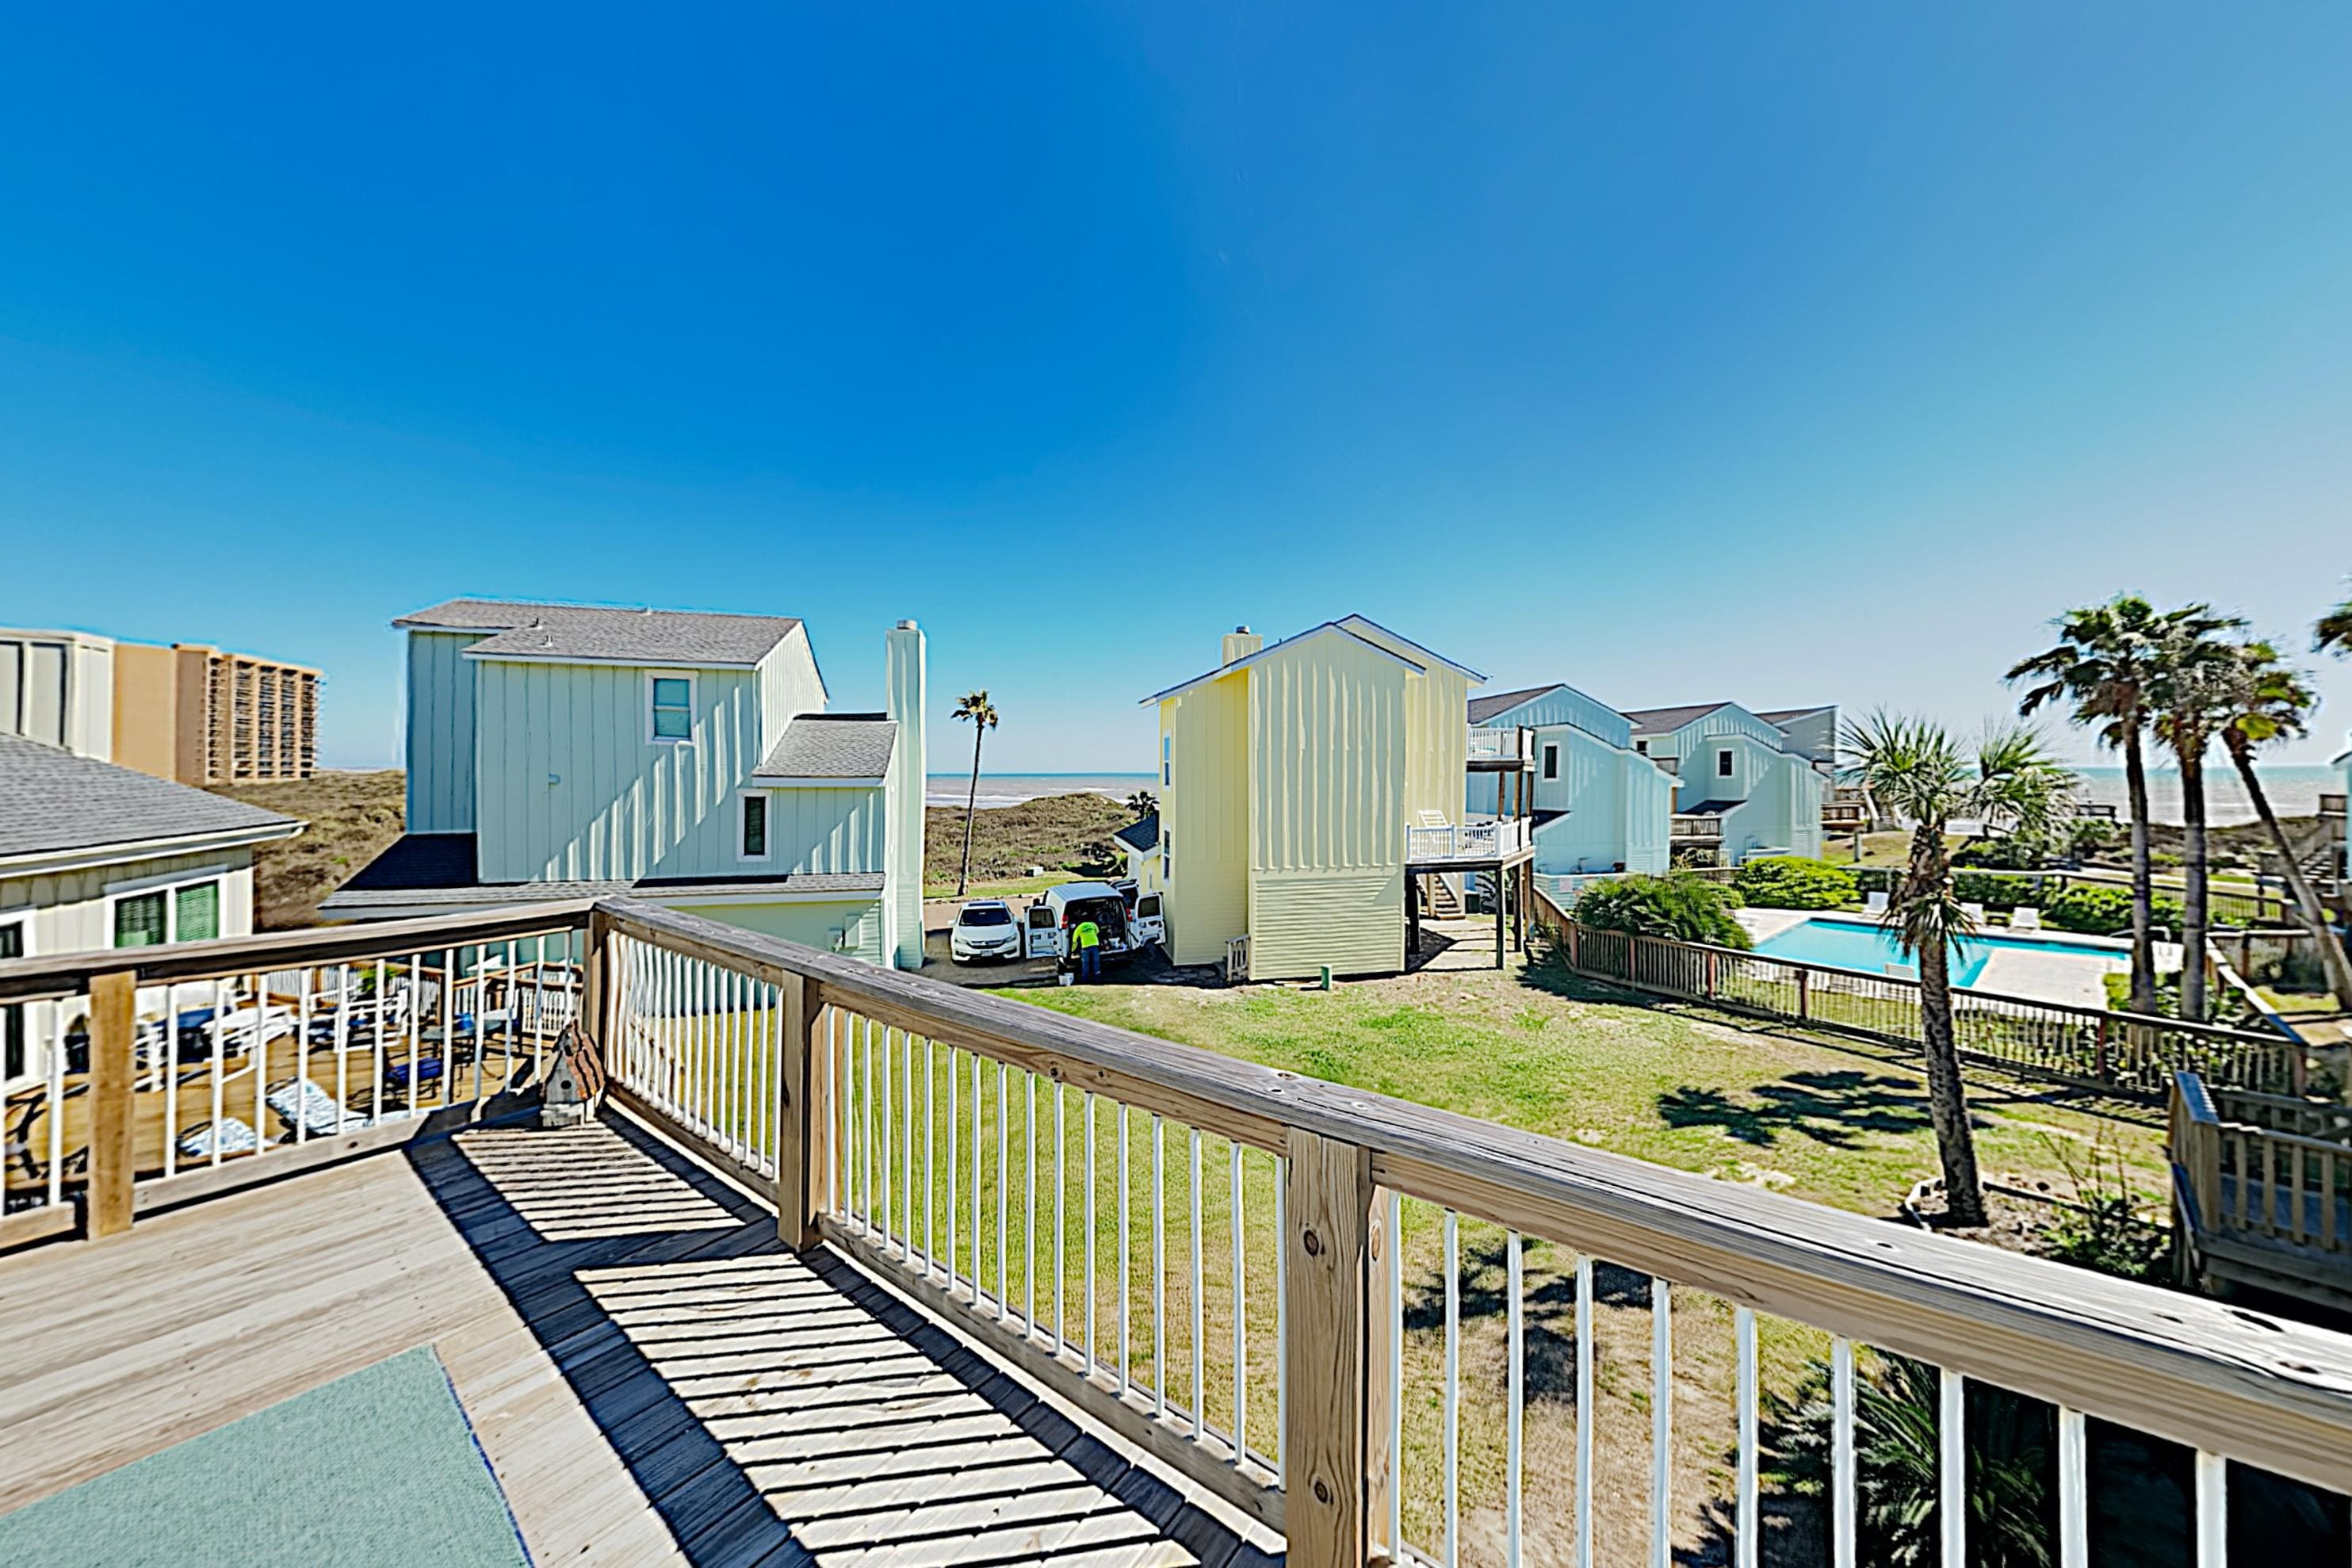 Welcome to Lost Colony! This beach house is professionally managed by TurnKey Vacation Rentals.